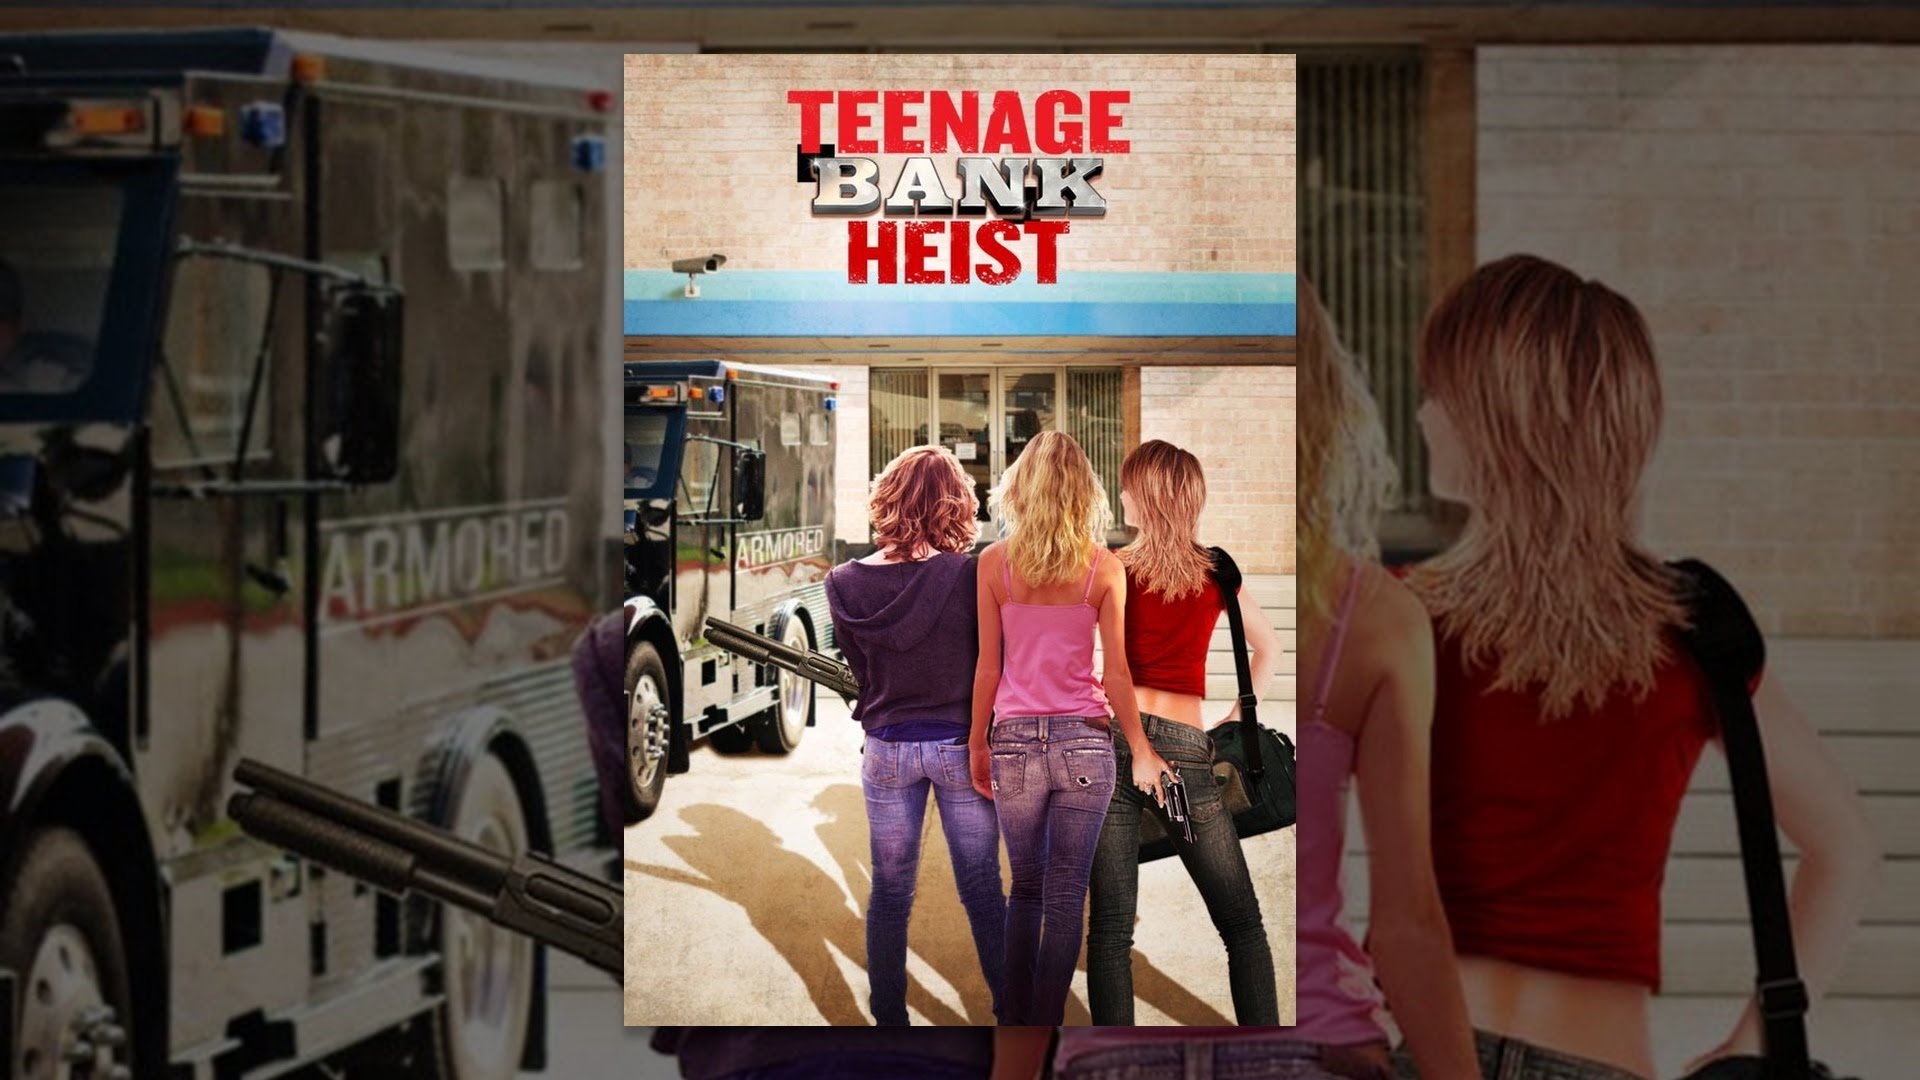 teen crimes It's hard to know if the new law, which will allow more teens to be tried as adults, will help or hurt youth.